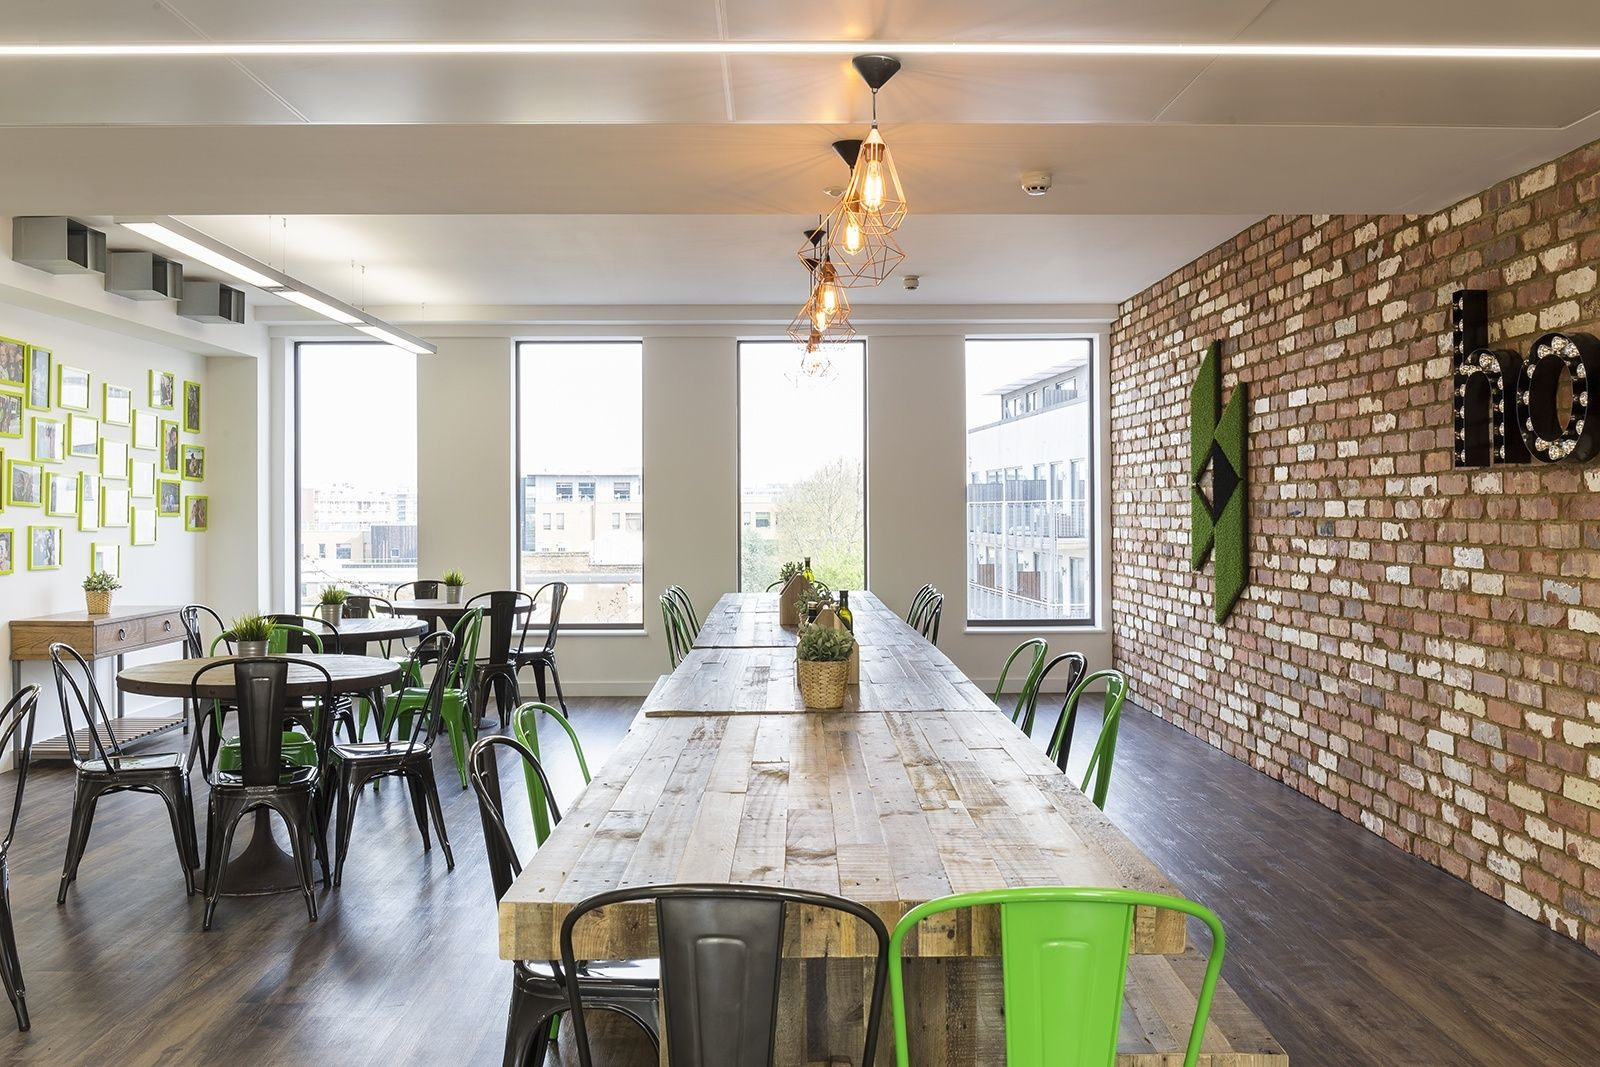 A tour of houzz s new european headquarters houzz break for Houzz corporate office